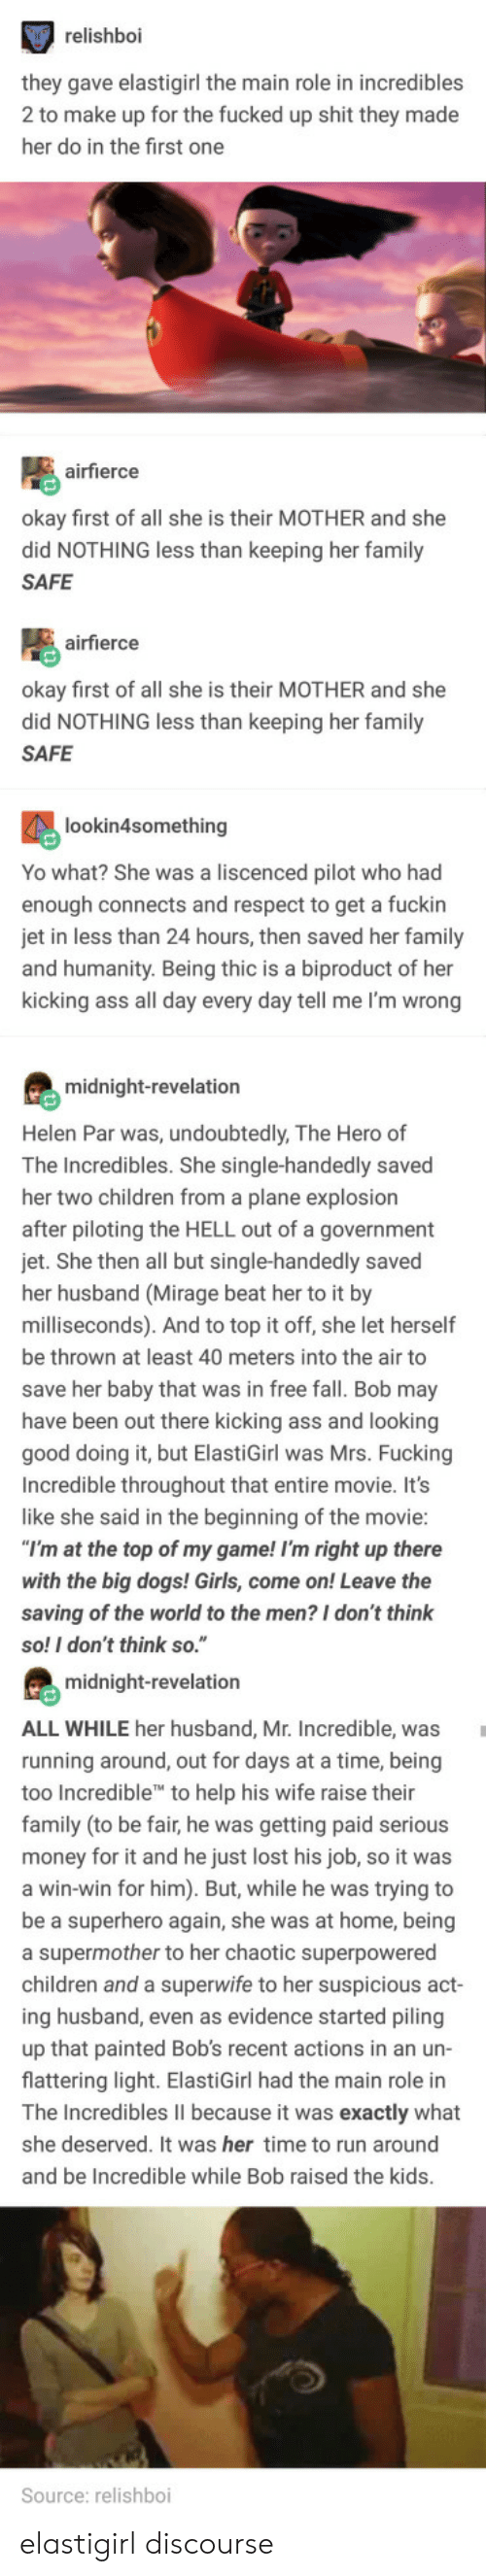 "Children, Dogs, and Fall: relishboi  hey gave elastigirl the main role in incredibles  2 to make up for the fucked up shit they made  her do in the first one  airfierce  kay first of all she is their MOTHER and she  did NOTHING less than keeping her family  SAFE  airfierce  okay first of all she is their MOTHER and she  did NOTHING less than keeping her family  SAFE  lookin4something  Yo what? She was a liscenced pilot who had  enough connects and respect to get a fuckin  in less than 24 hours, then saved her family  nd humanity. Being thic is a biproduct of her  kicking ass all day every day tell me I'm wrong  midnight-revelation  Helen Par was, undoubtedly, The Hero of  The Incredibles. She single-handedly saved  her two children from a plane explosion  fter piloting the HELL out of a government  jet. She then all but single-handedly saved  her husband (Mirage beat her to it by  milliseconds). And to top it off, she let herself  be thrown at least 40 meters into the air to  save her baby that was in free fall. Bob may  have been out there kicking ass and looking  good  Incredible throughout that entire movie. It's  like she said in the beginning of the movie  doing it, but ElastiGirl was Mrs. Fucking  at the top of my game! I'm right up there  with the big dogs! Girls, come on! Leave the  saving of the world to the men? I don't think  so! I don't think so.""  midnight-revelation  ALL WHILE her husband, Mr. Incredible, was  running around, out for days at a time, being  too In  family (to be fair, he was getting paid serious  credible to help his wife raise their  ney for it and he just lost his job, so it was  win-win for him). But, while he was trying to  e a superhero again, she was at home, being  a supermother to her chaotic superpowered  children and a superwife to her suspicious a  ing husband, even as evidence started piling  up that painted Bob's recent actions in an un-  flattering light. ElastiGirl had the main role in  ct  he Incredibles lII because it was exactly what  she deserved. It was her time to run around  and be Incredible while Bob raised the kids  Source: relishboi elastigirl discourse"